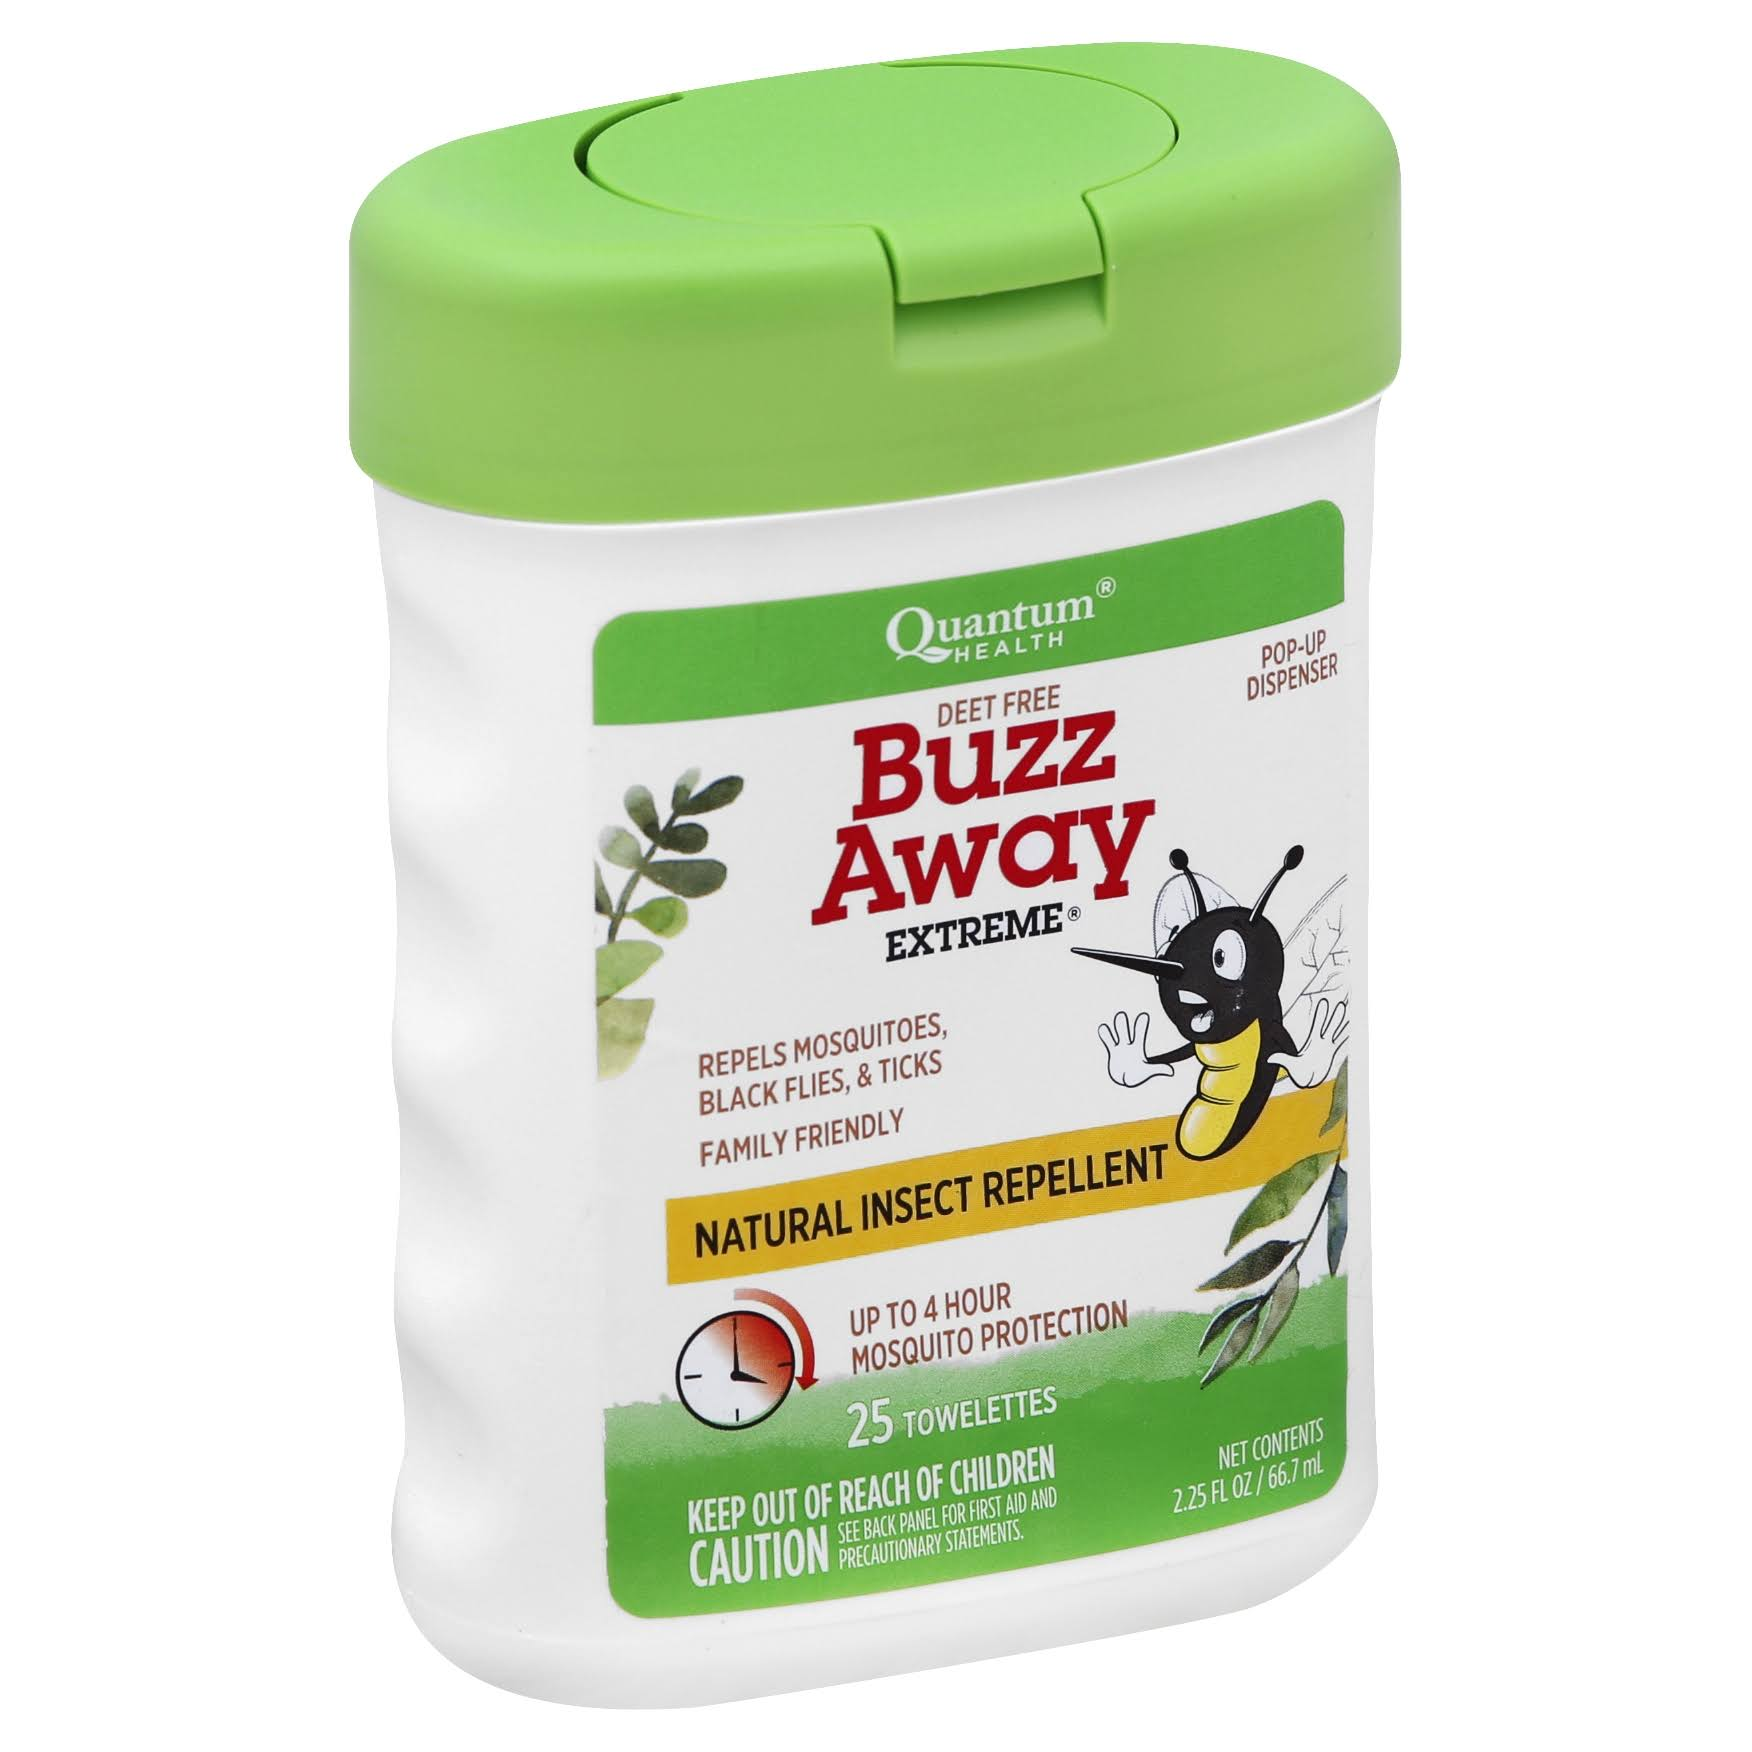 Quantum Health Buzz Away Extreme Natural Insect Repellent Towelettes - 25 Count